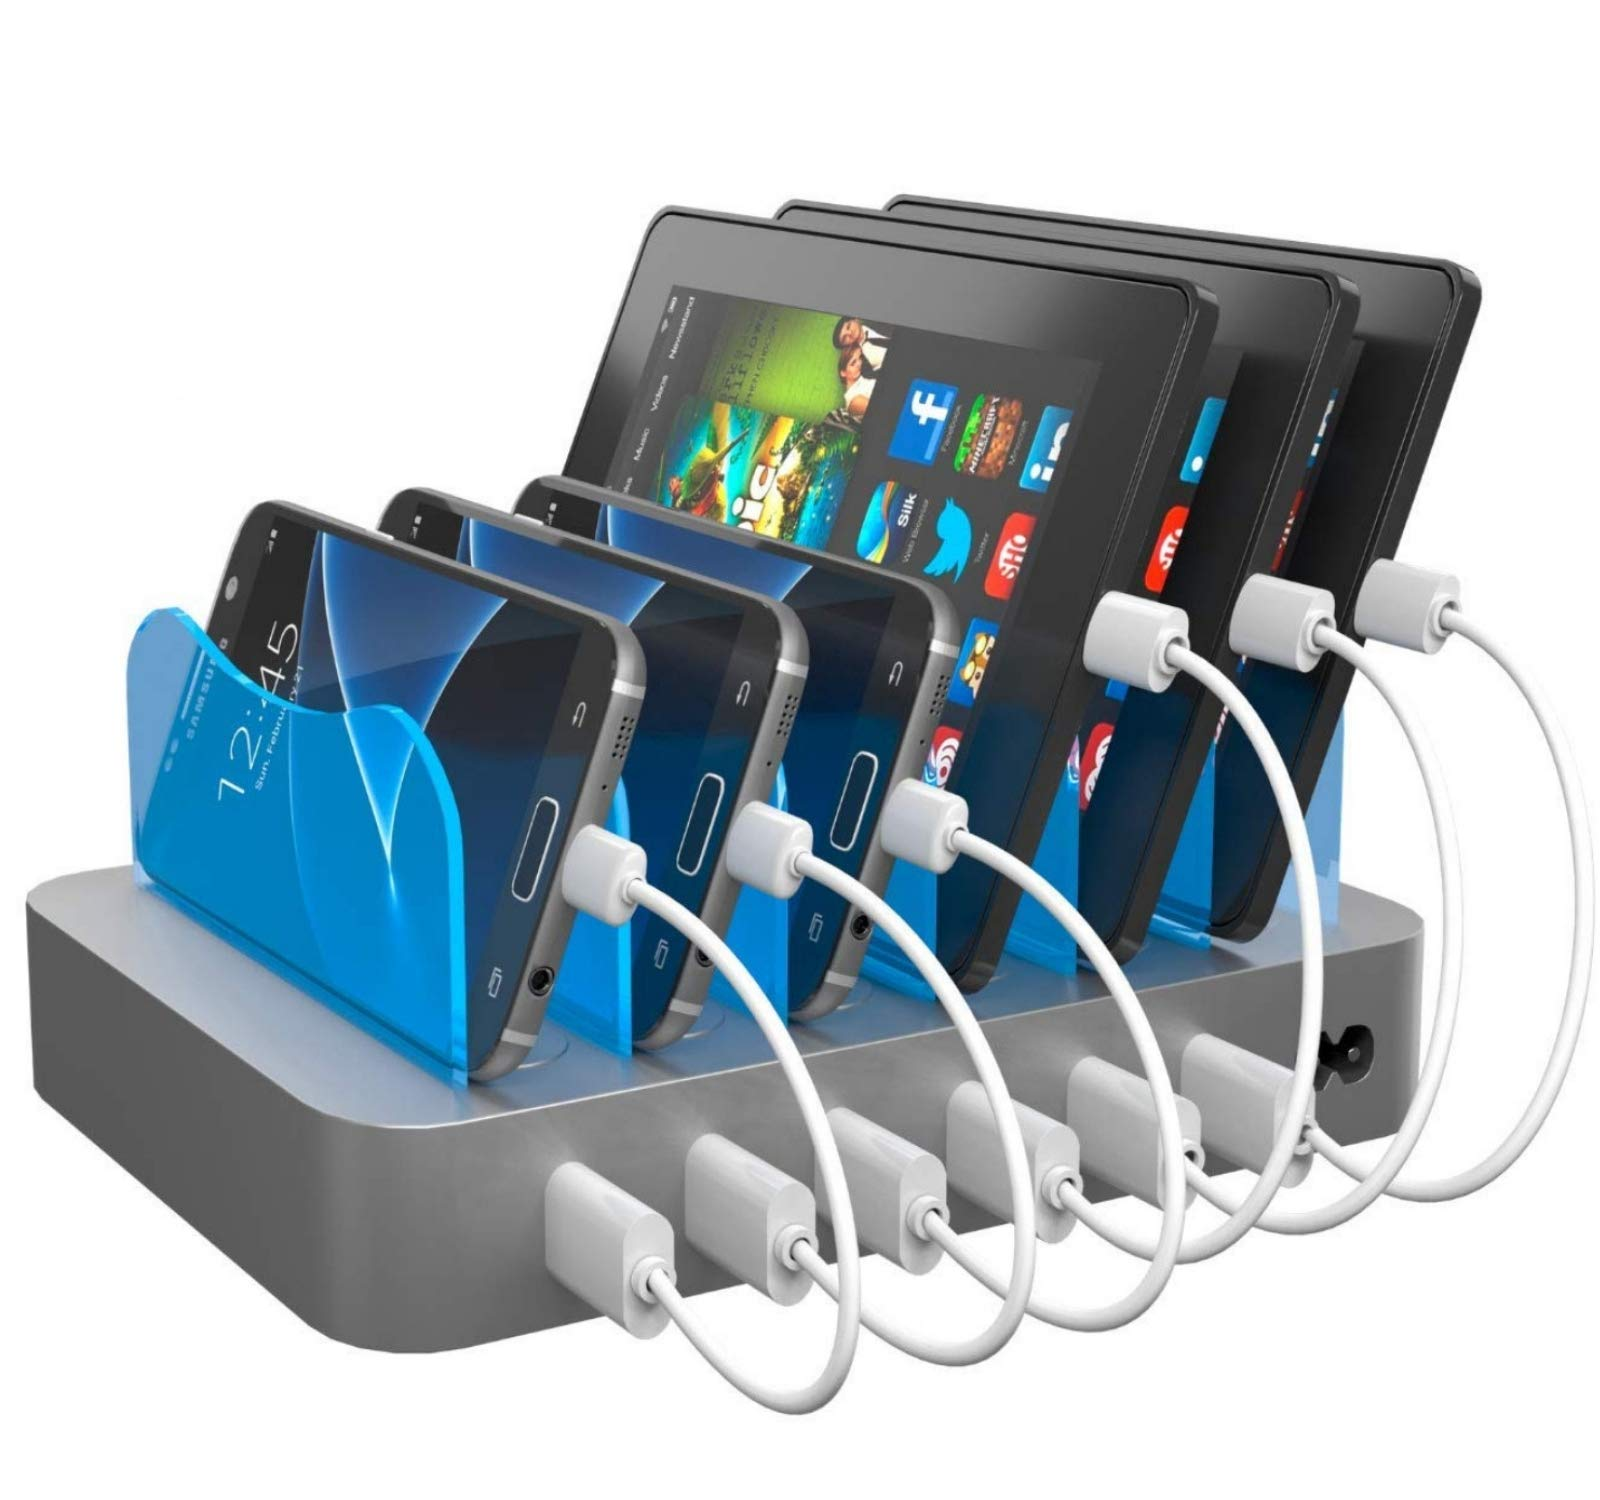 Hercules Tuff Phone Charging Station - Multi Device Organizer - Works for Galaxy S6/S7/S8/S9, Note 6/7/8/9 and More - Micro USB and Type C Cables Included by Hercules Tuff